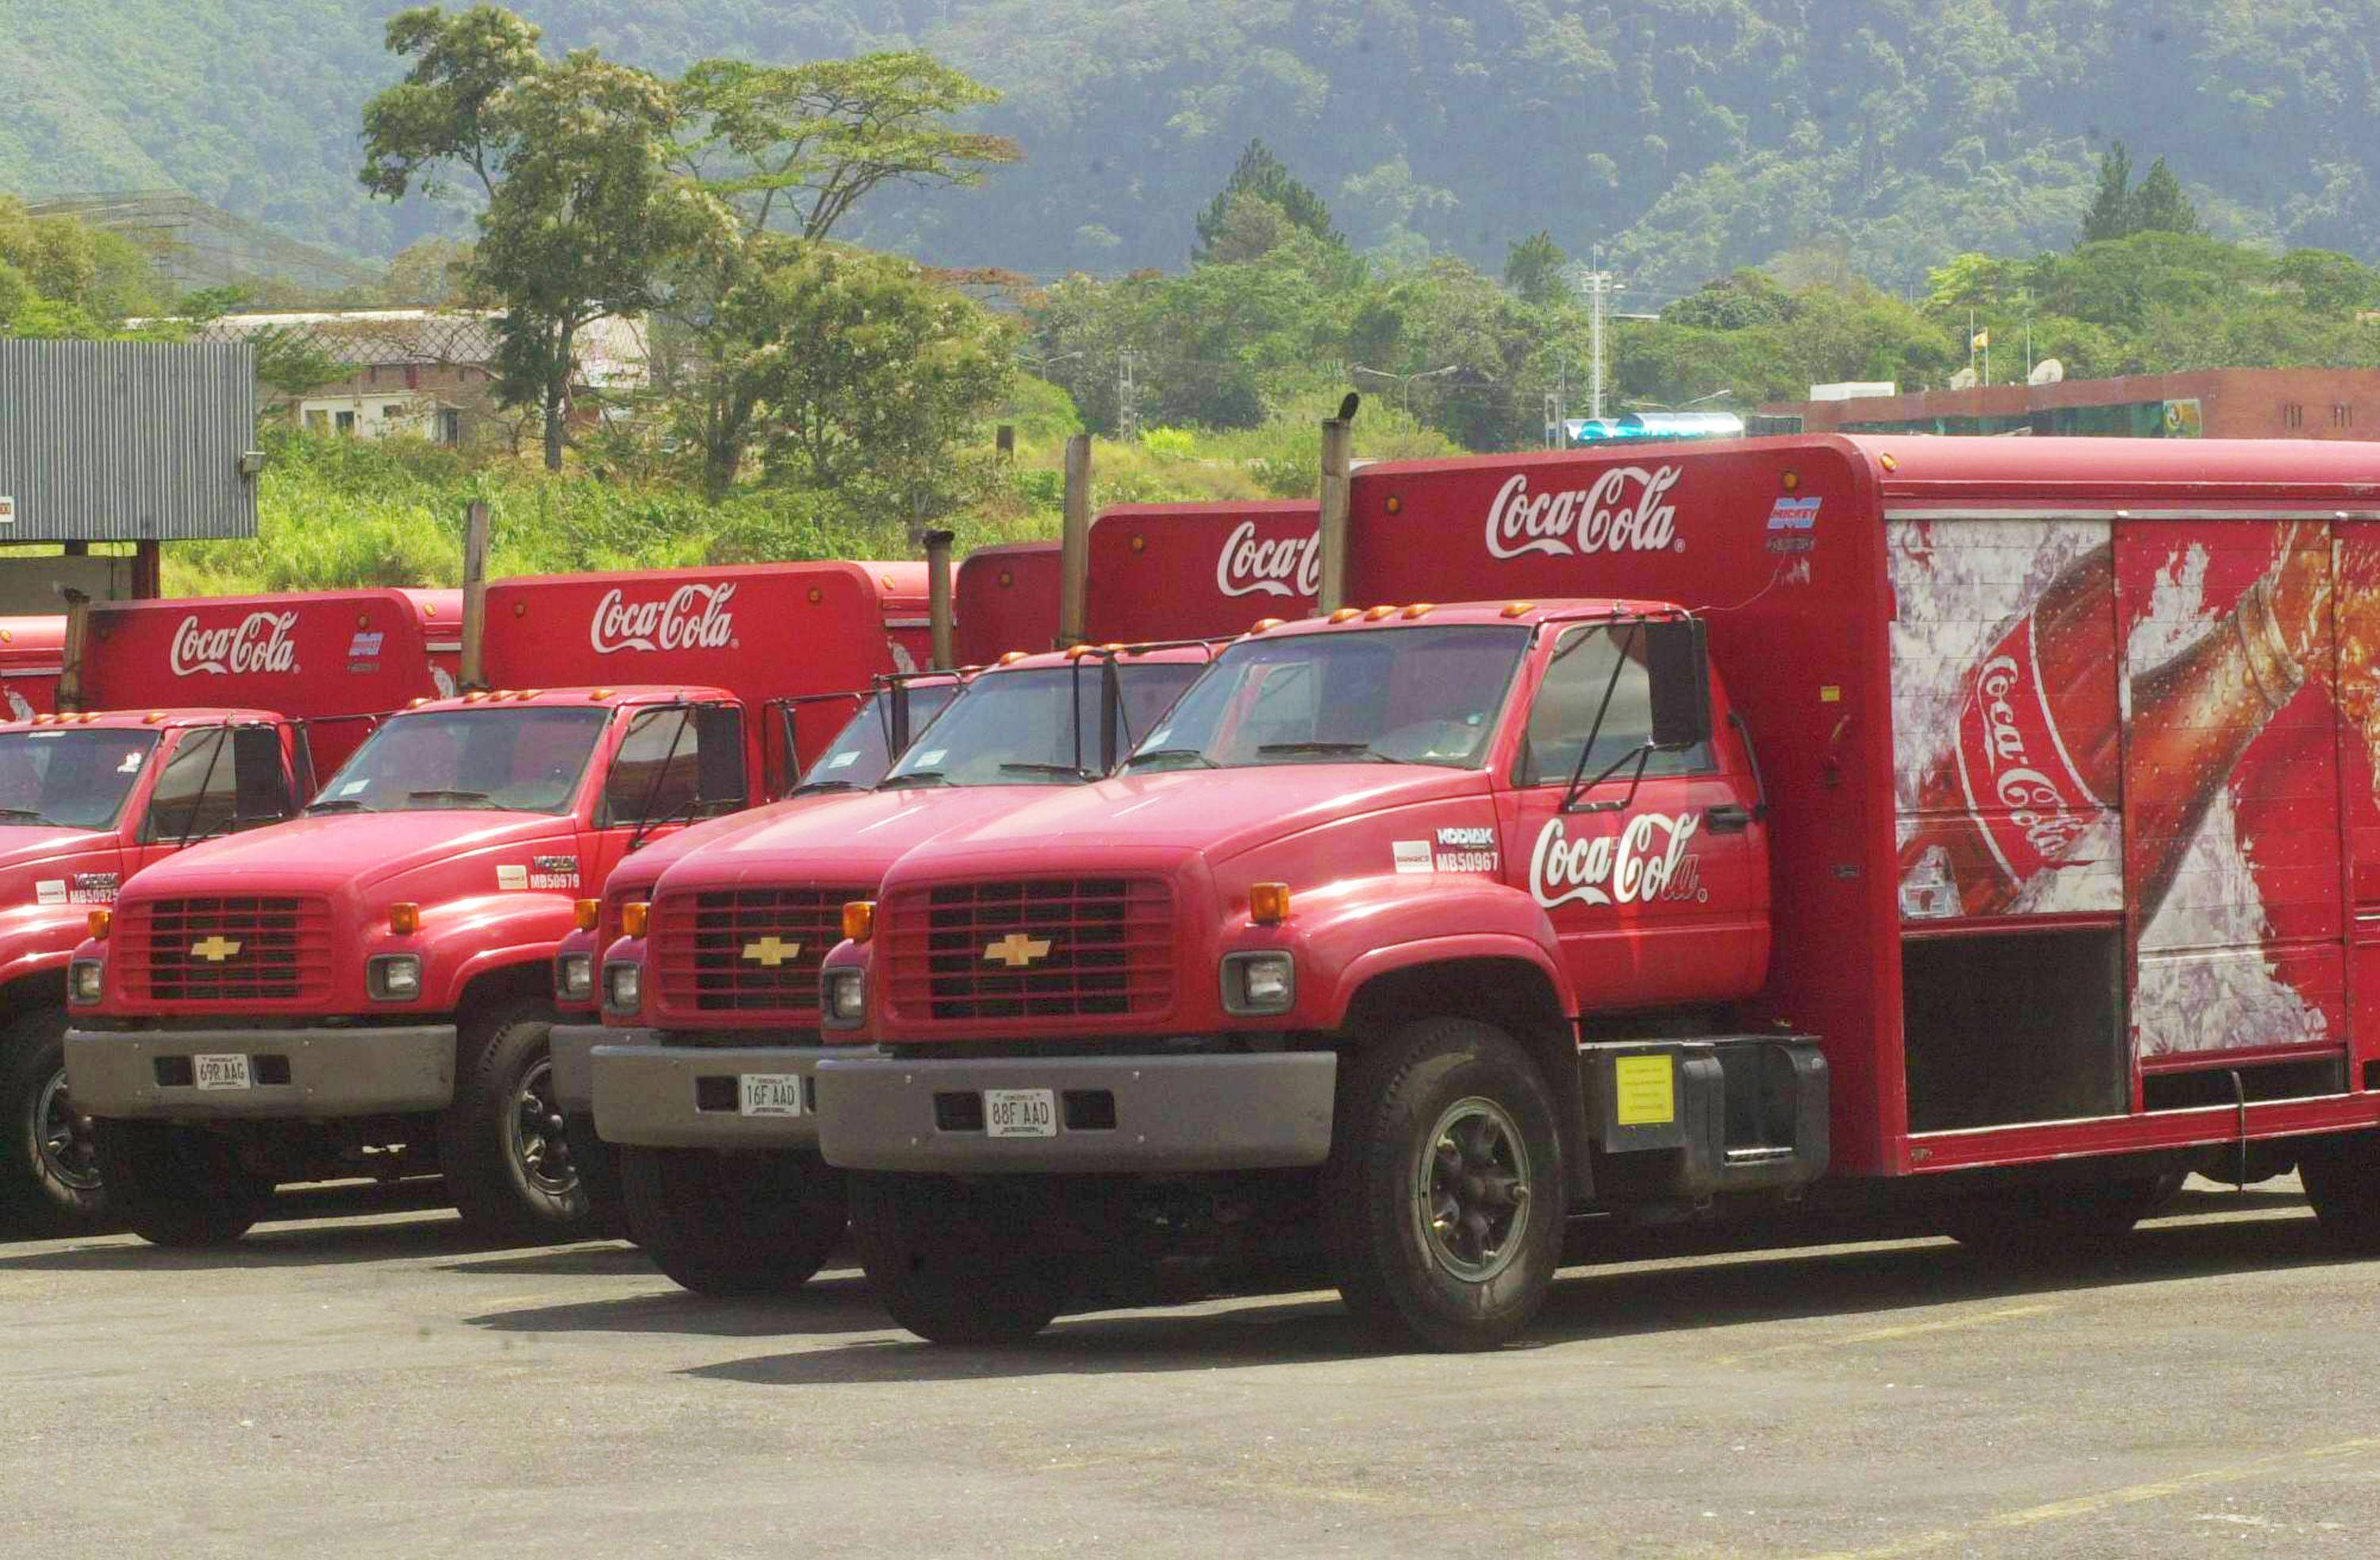 Coca-Cola delivery trucks